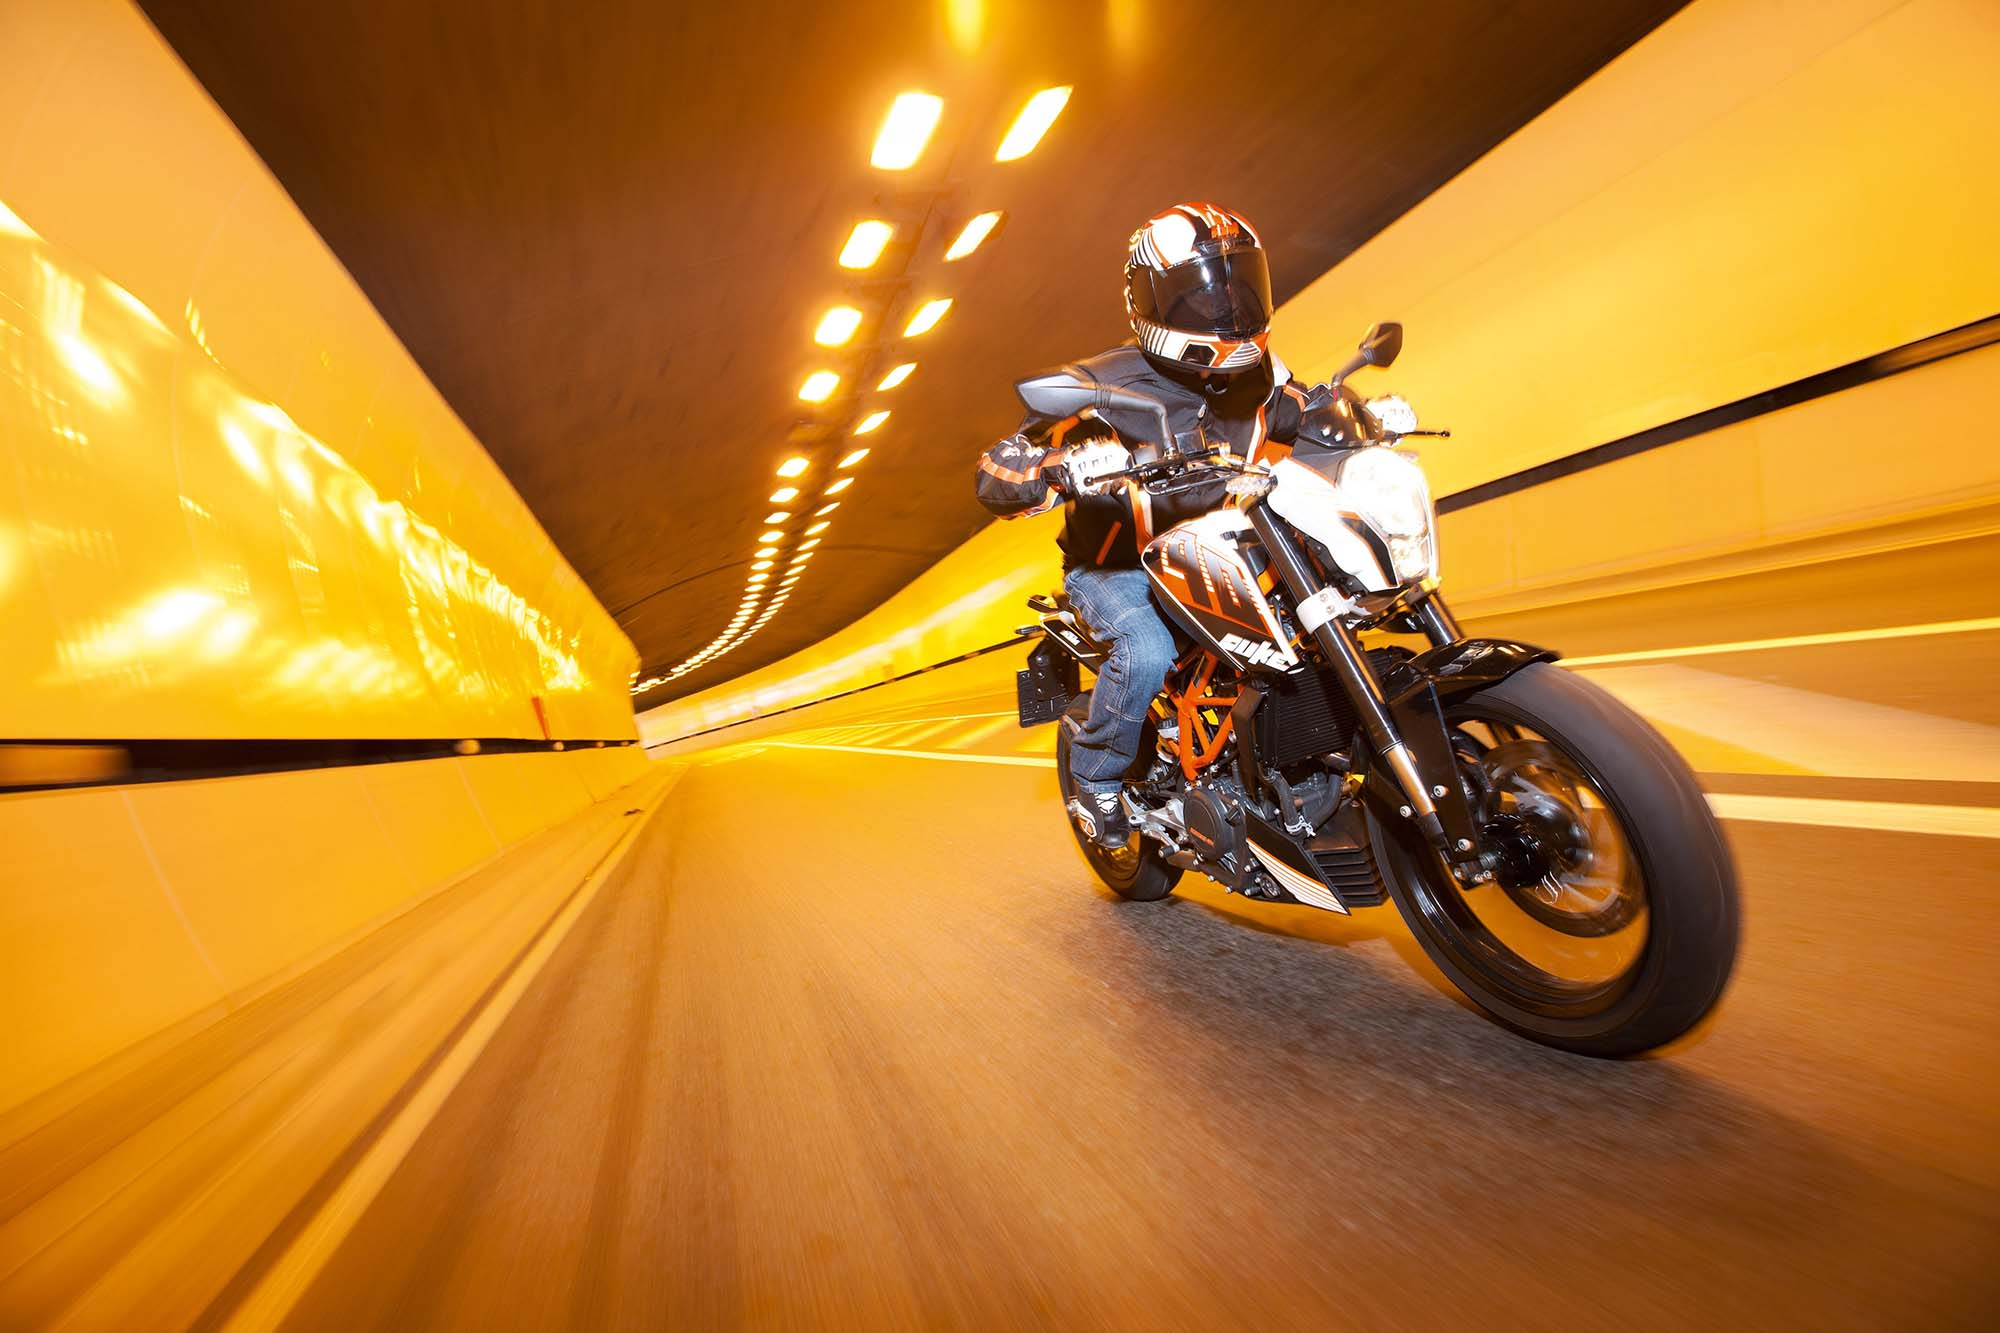 High Resolution Pictures: More High-Res Photos Of The KTM 390 Duke